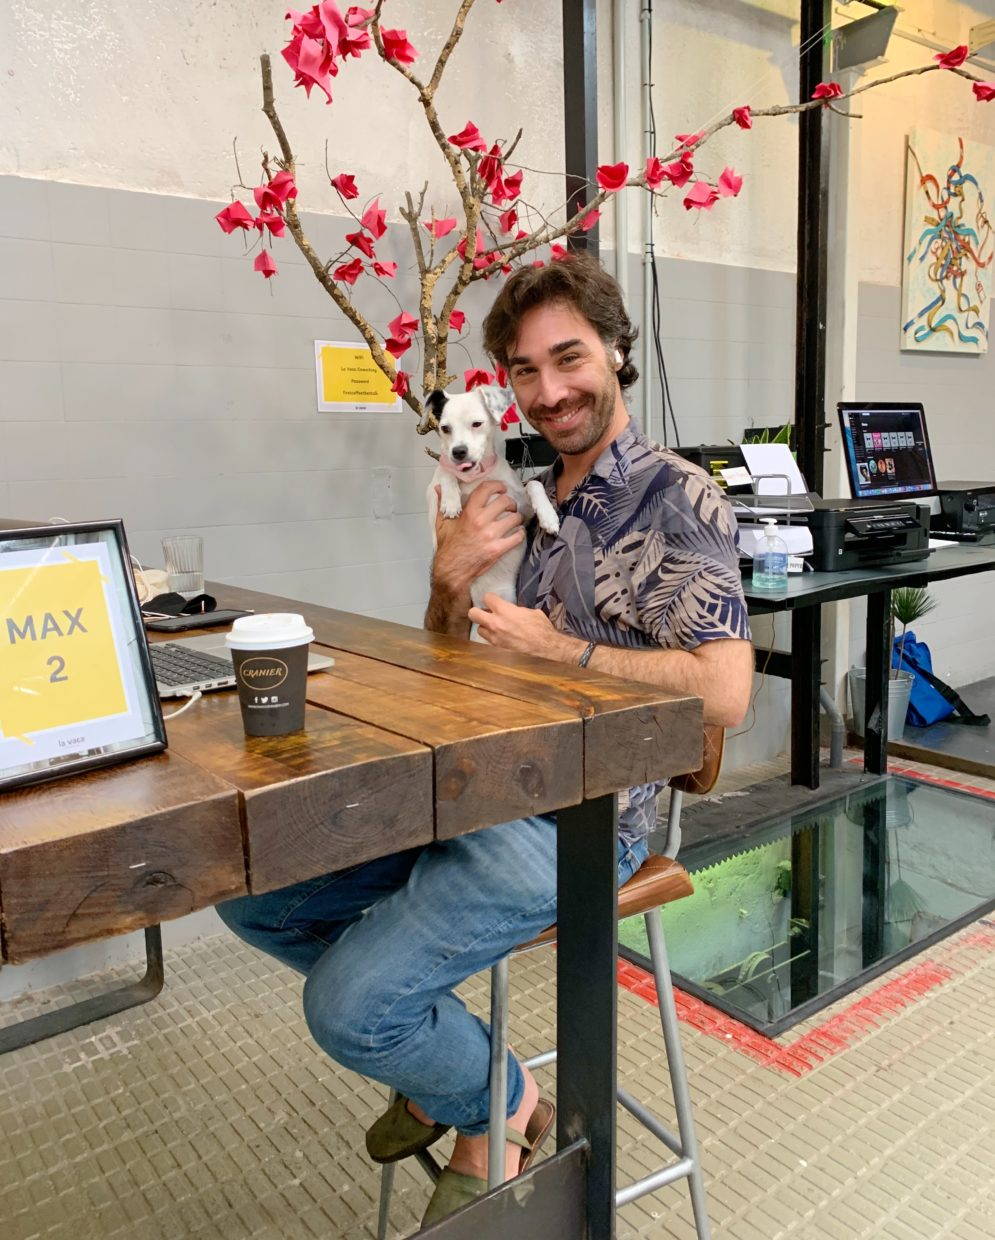 member of la vaca coworking Barcelona with a dog in his arms